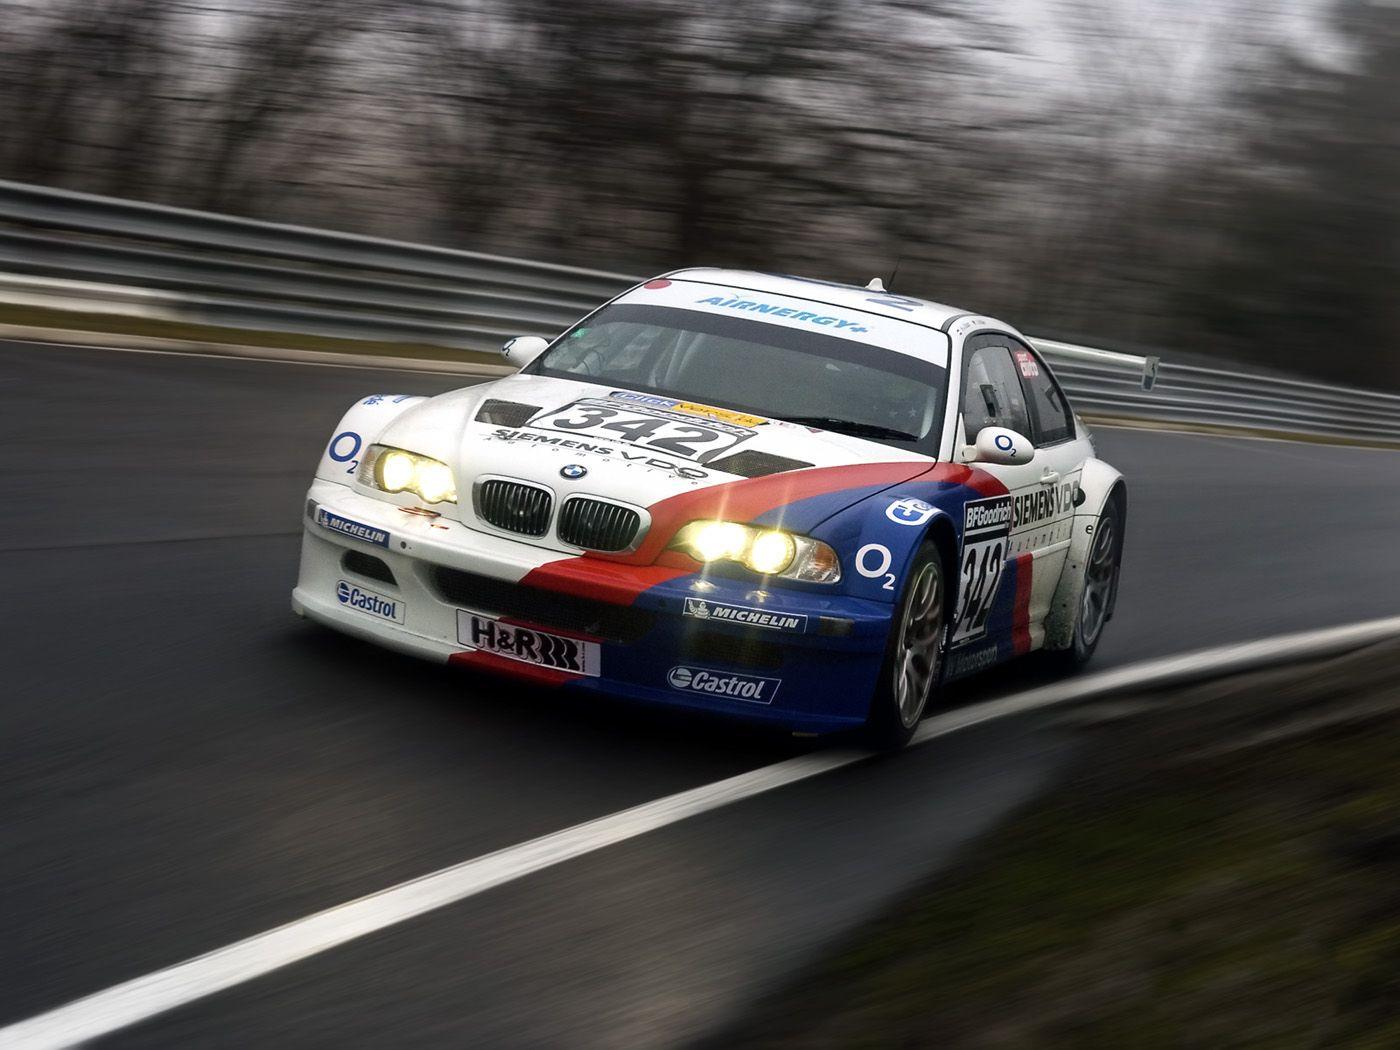 BMW BMW M3 E46 Gtr Wallpapers Car